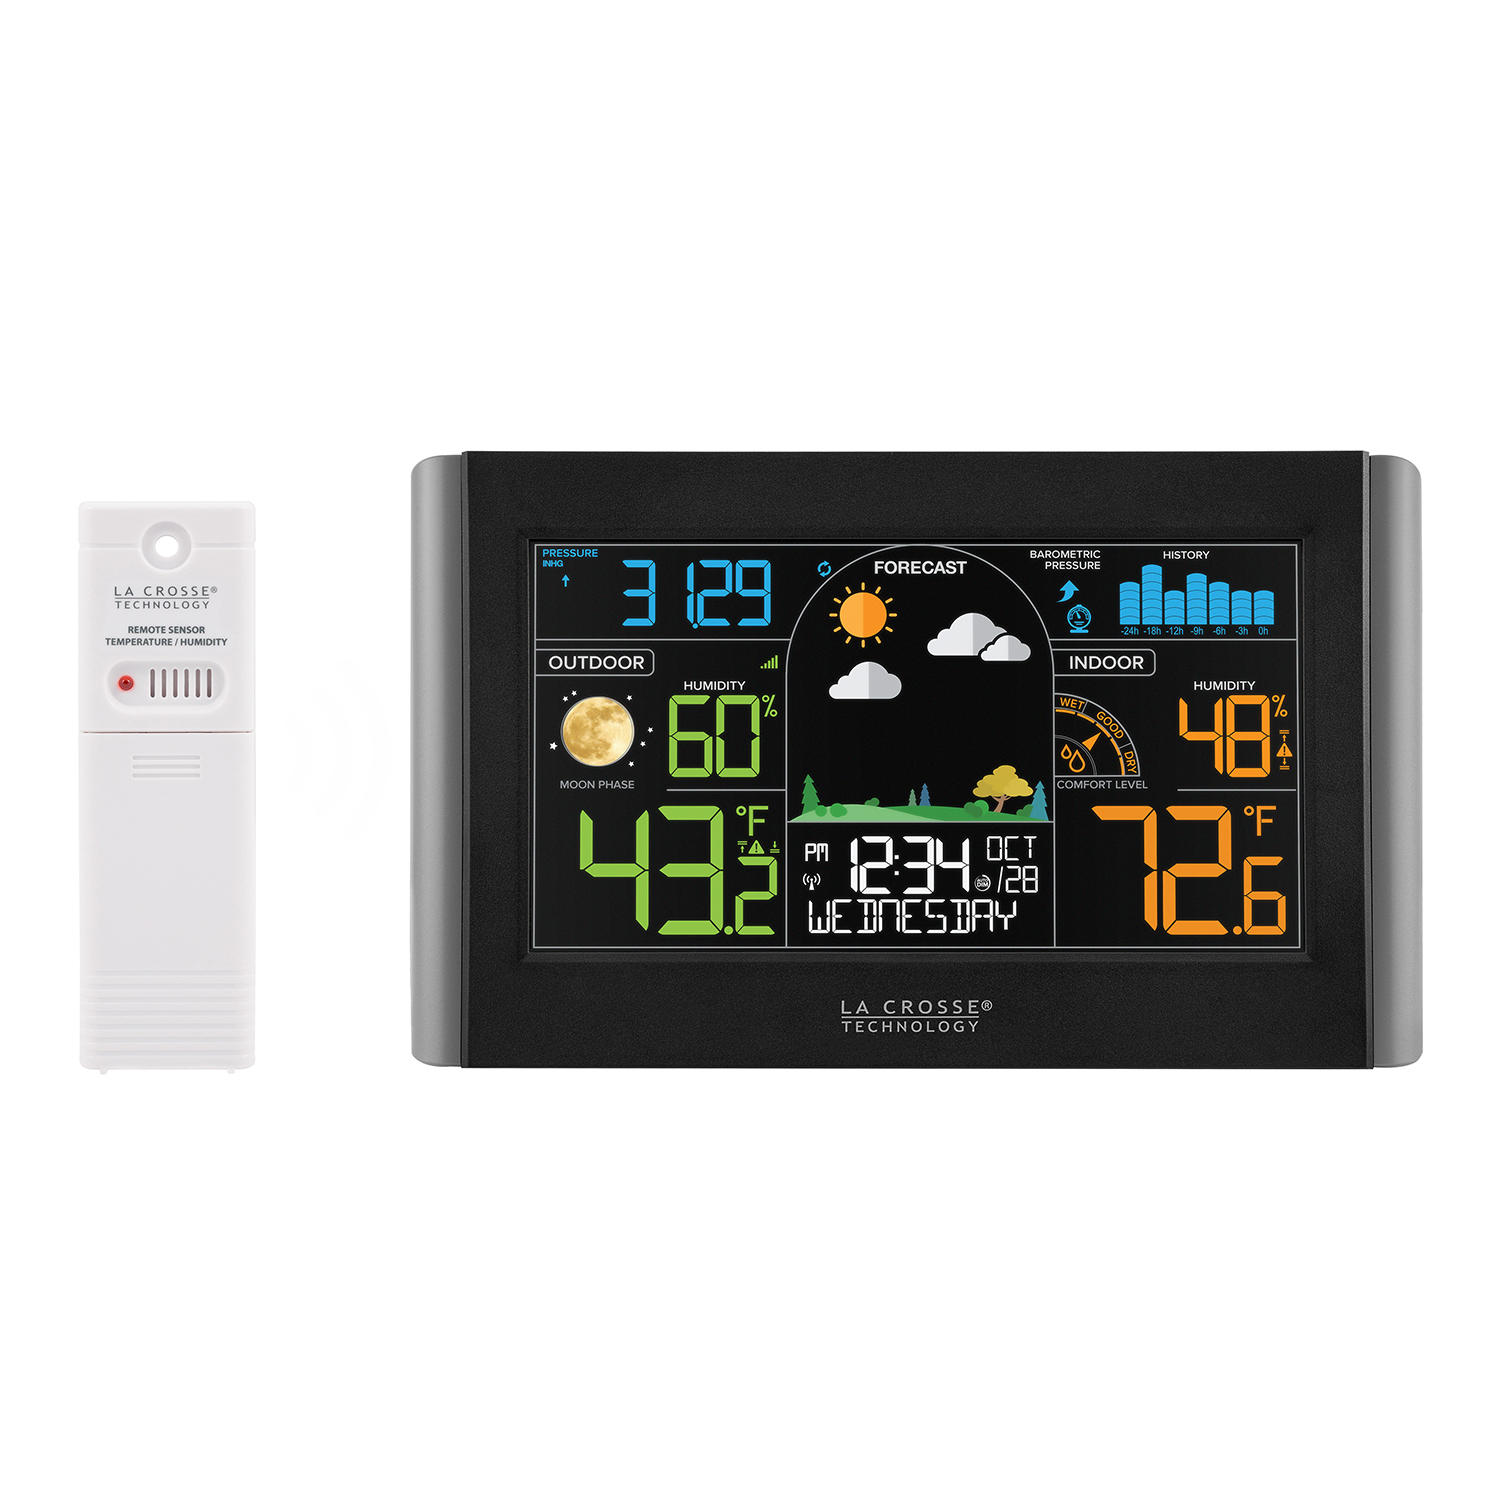 La Crosse Technology S77925-INT Wireless Weather Station with Atomic Time & Date